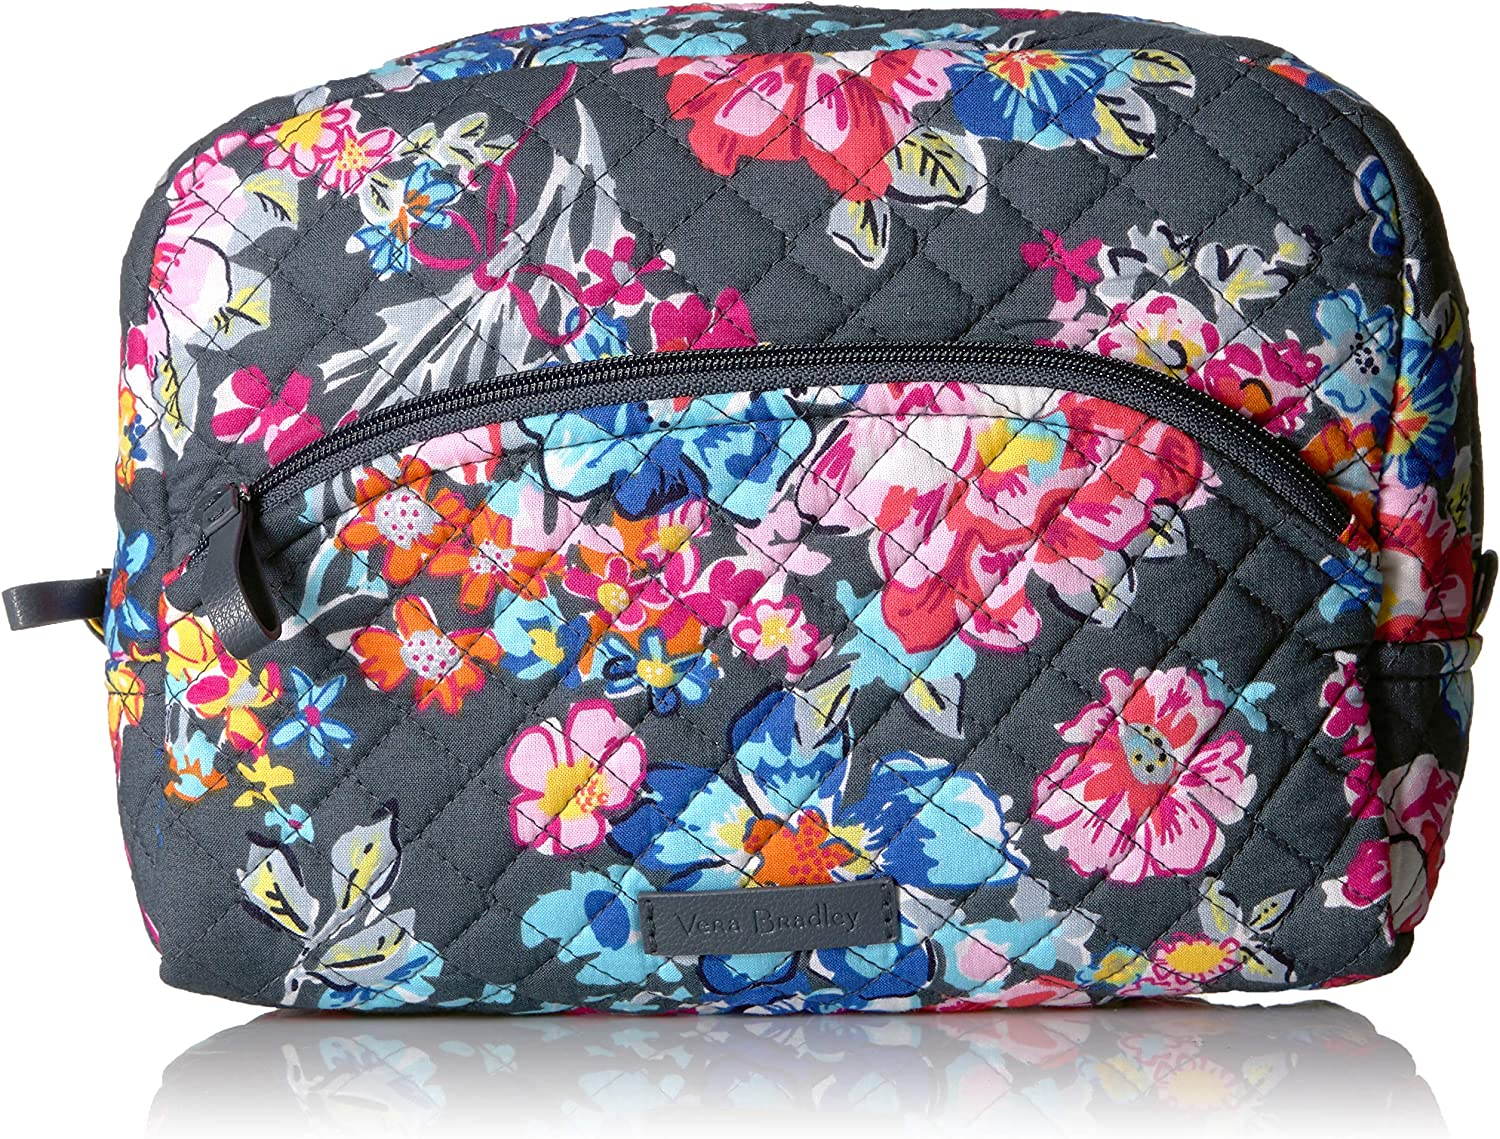 Vera Bradley Iconic Large Cosmetic, Signature Cotton